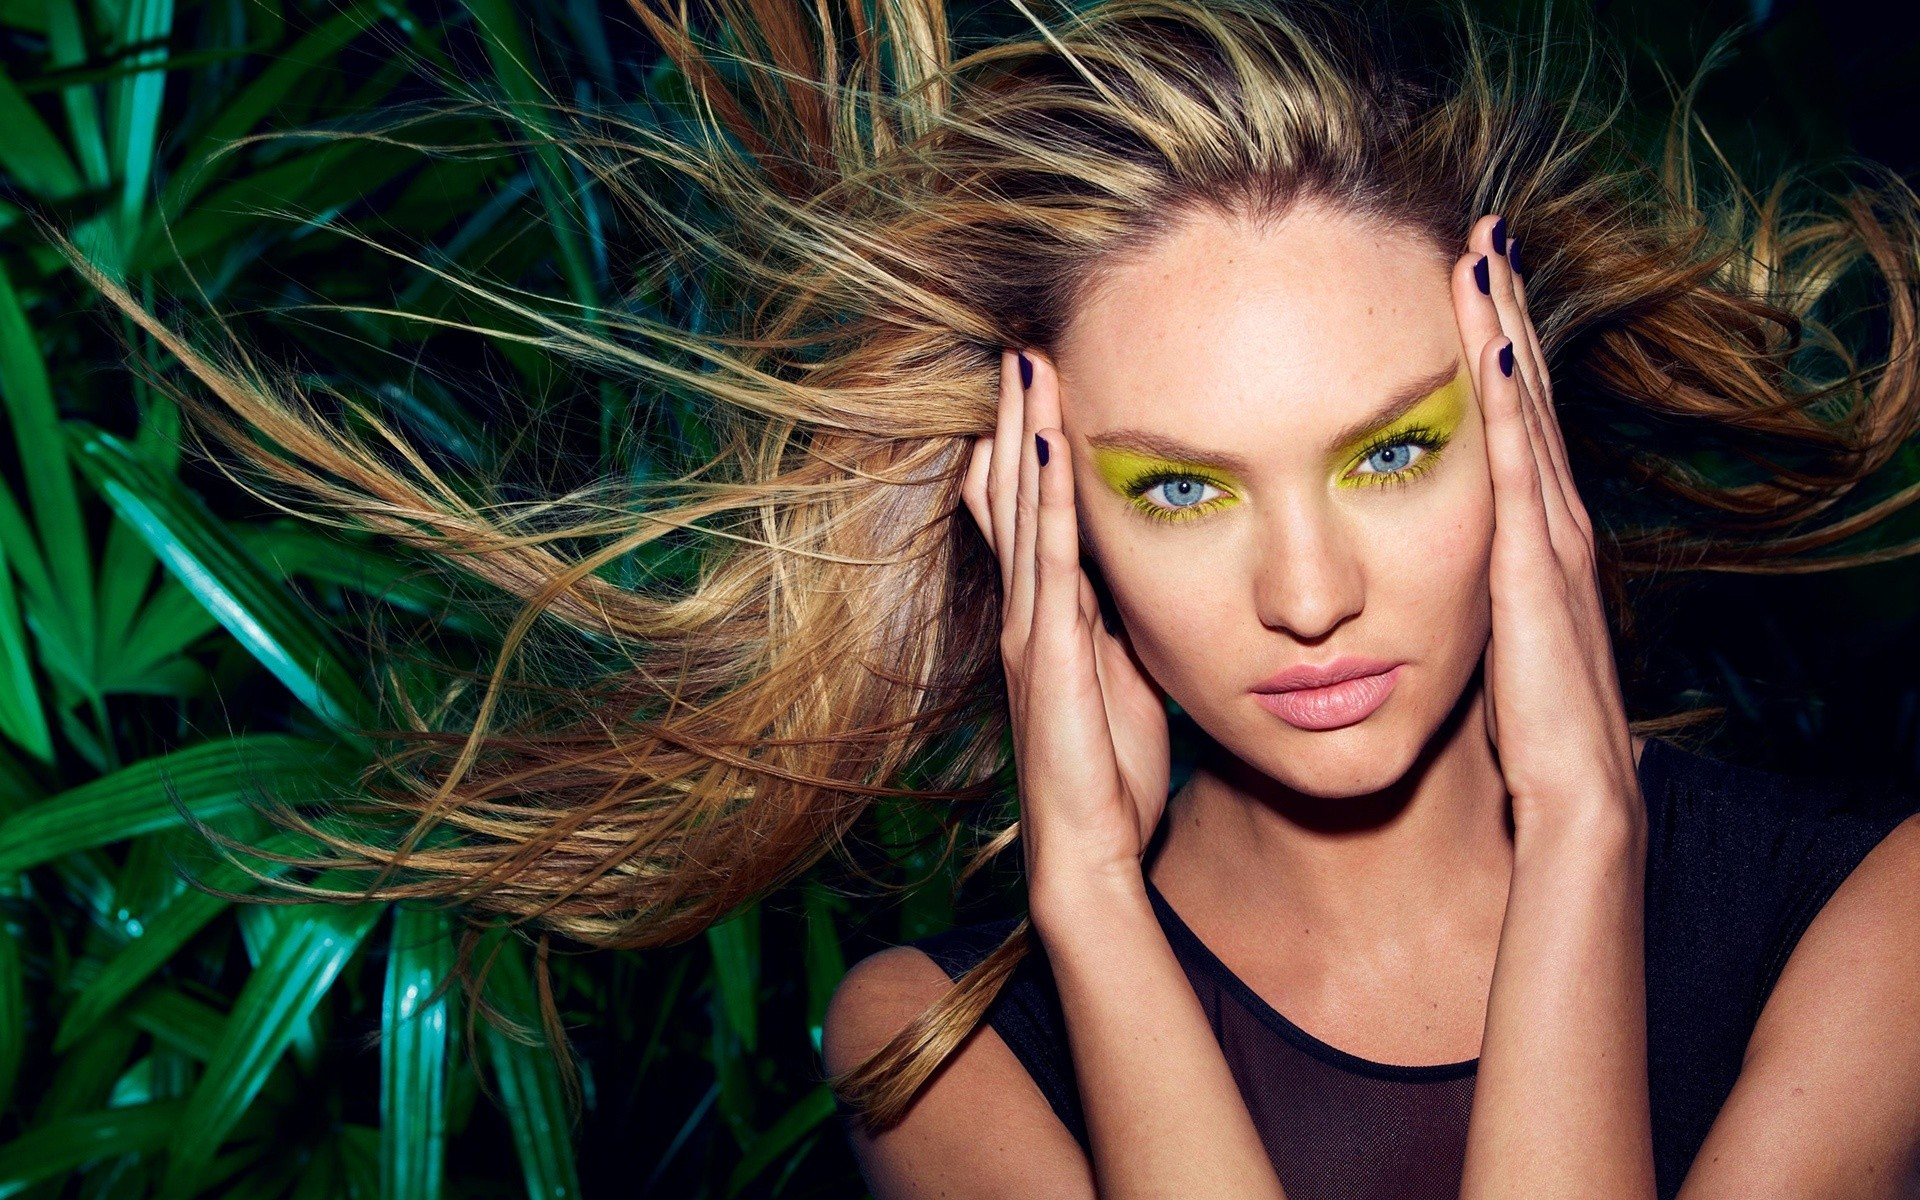 Candice Swanepoel 2014 Wide